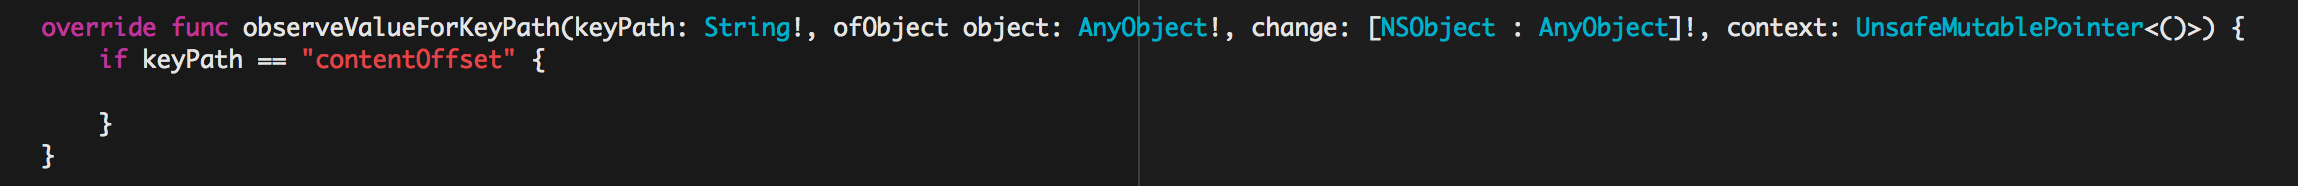 WTDWebViewController_swift.png